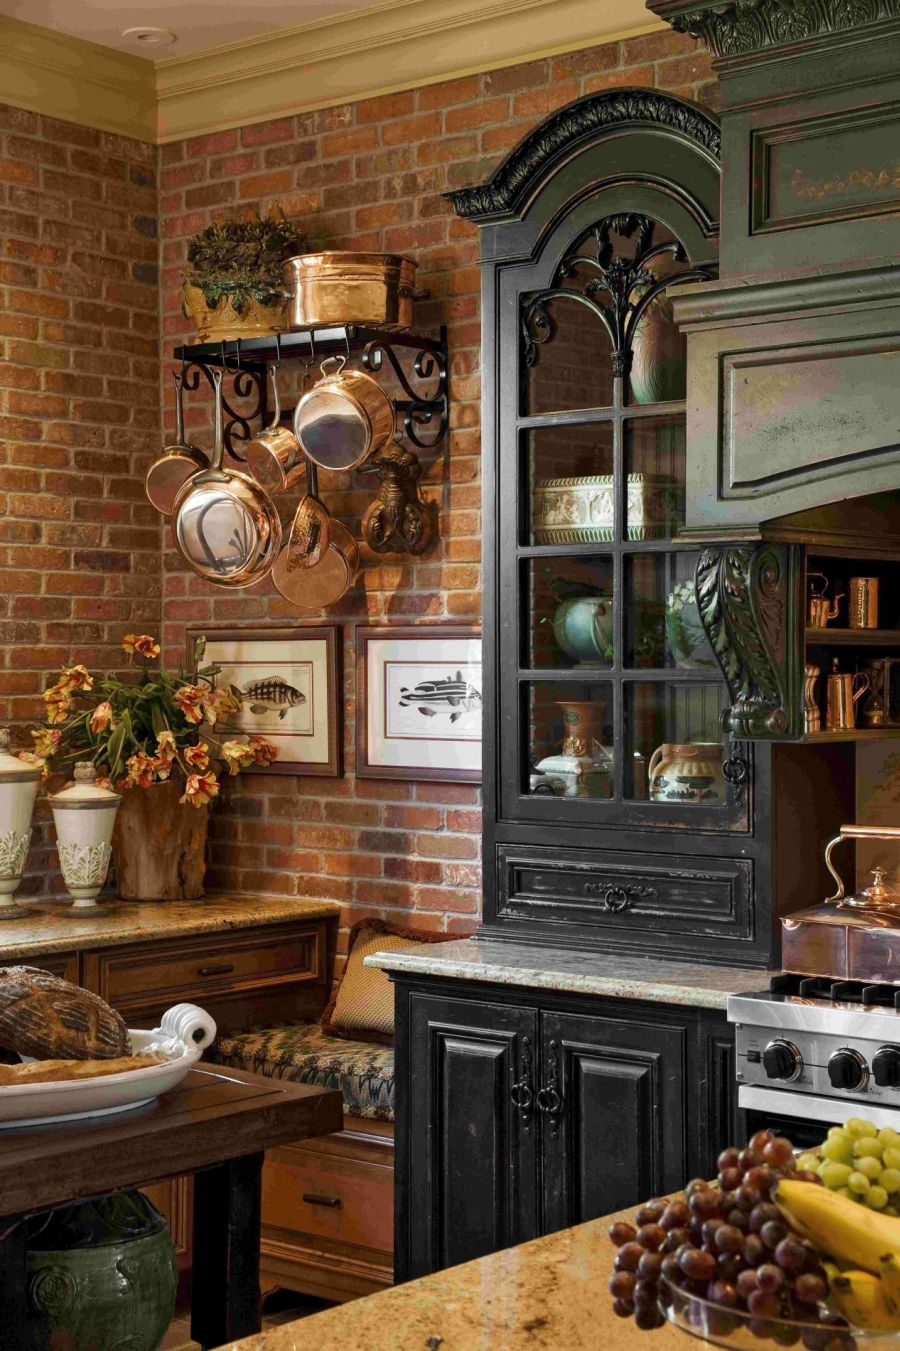 20 ways to create a french country kitchen - Interior plan de campagne ...